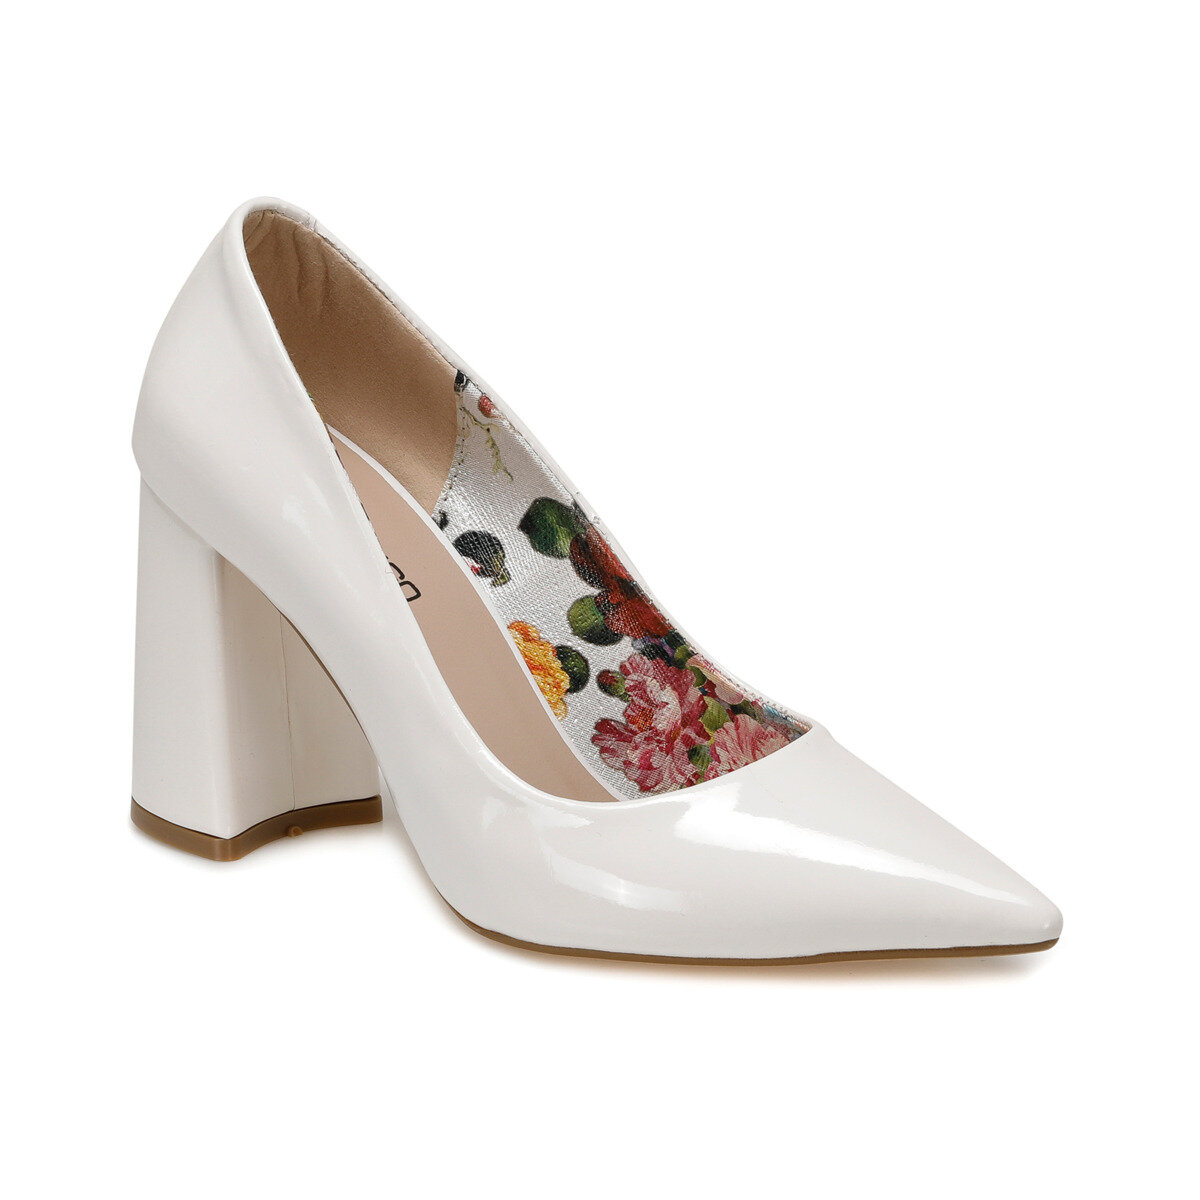 FLO BONNİE White Women 'S High-Heeled Shoes BUTIGO title=